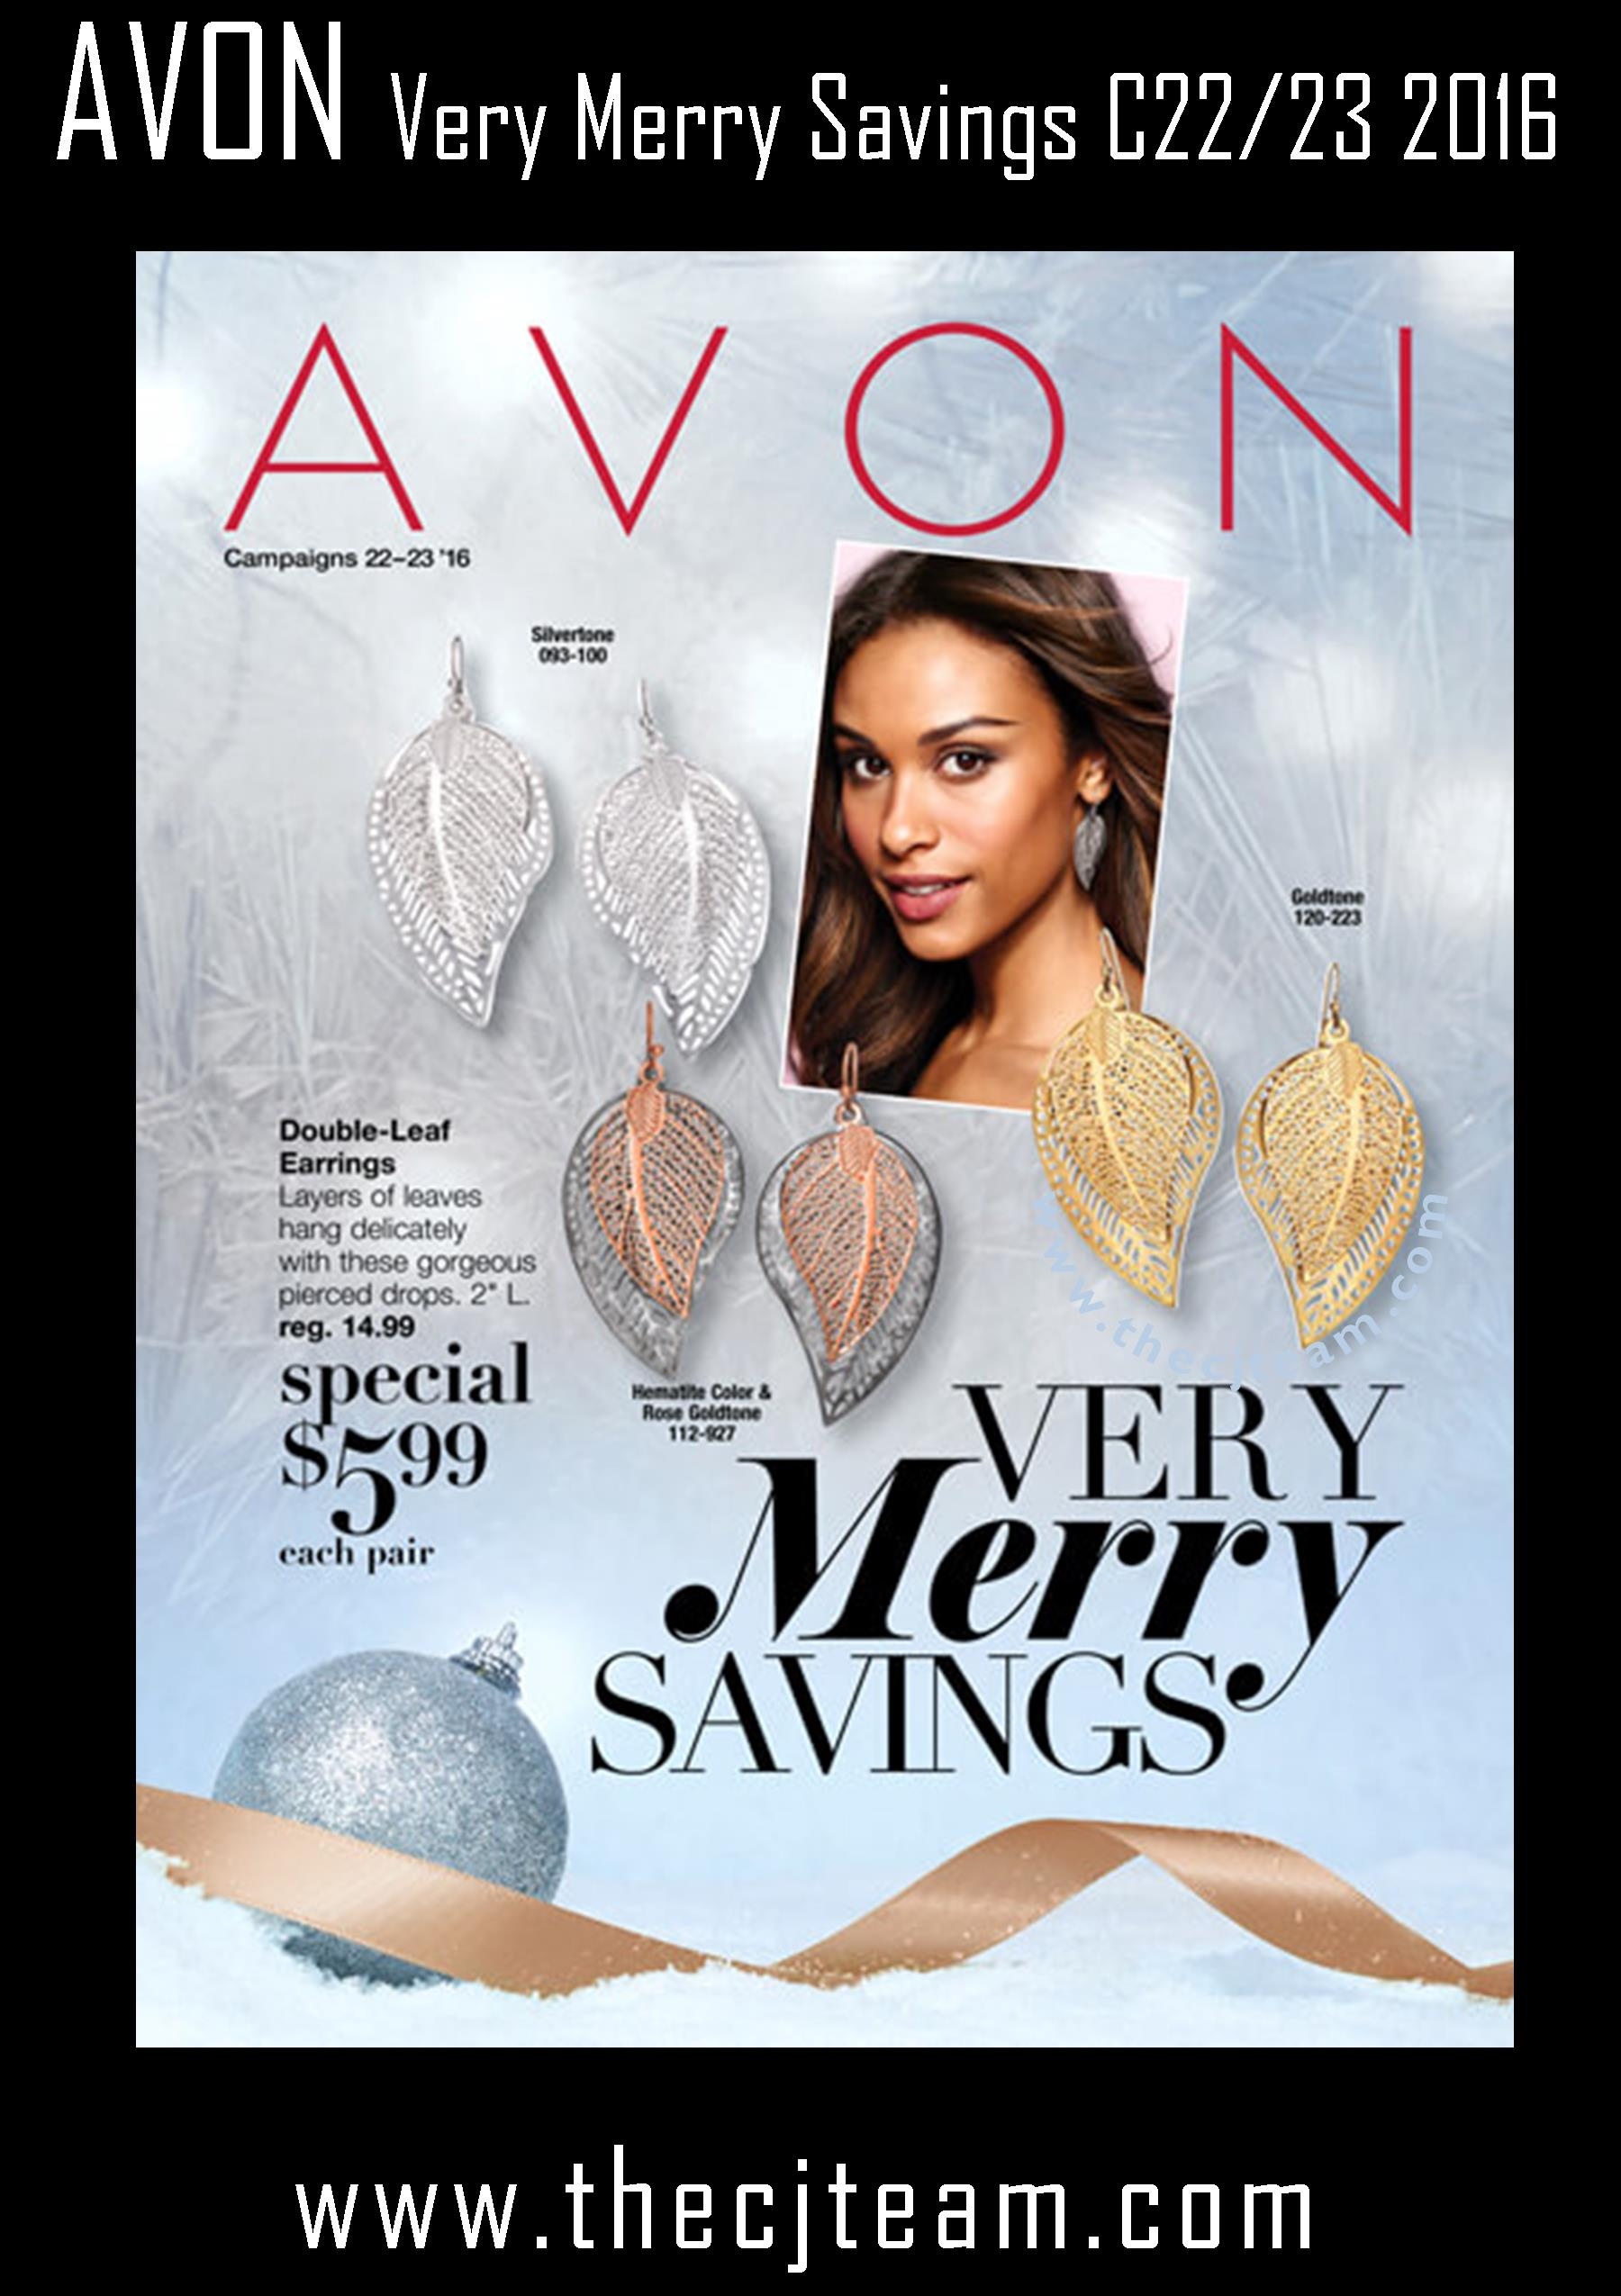 Avon Very Merry Savings Campaign 22/23, 2016 - More Than Makeup Online